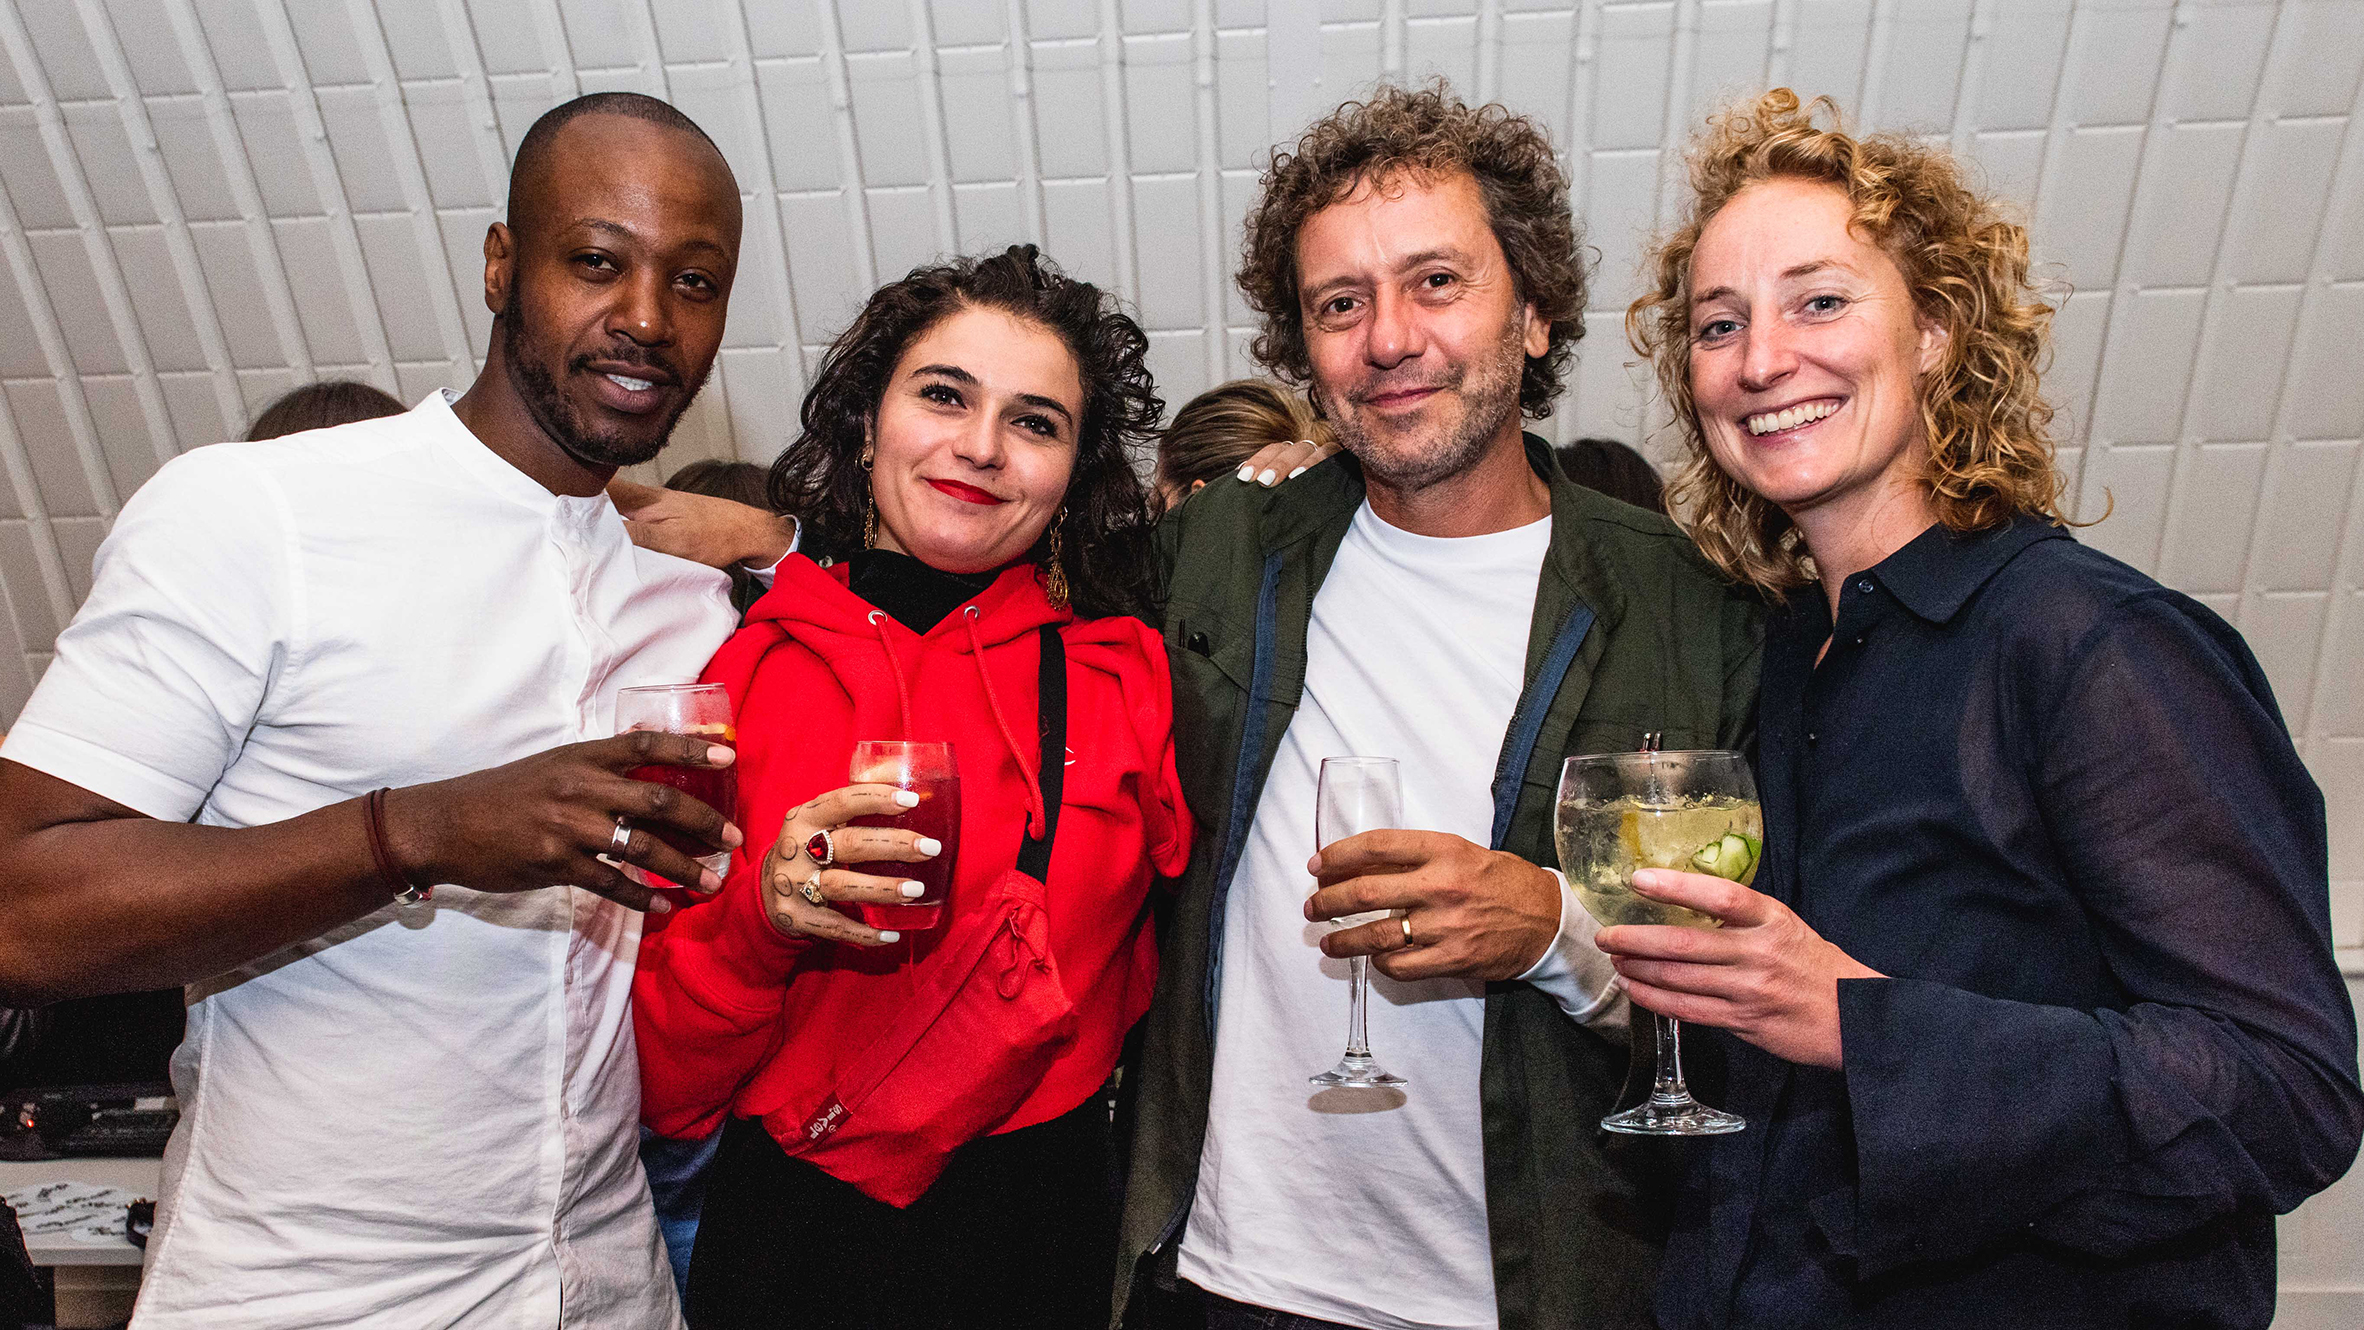 Marcus Thomas and Dezeen Awards 2019 judge Nelly Ben Hayoun with Dezeen's founder and editor-in-chief Marcus Fairs and Atelier NL co-founder Lonny van Ryswyck